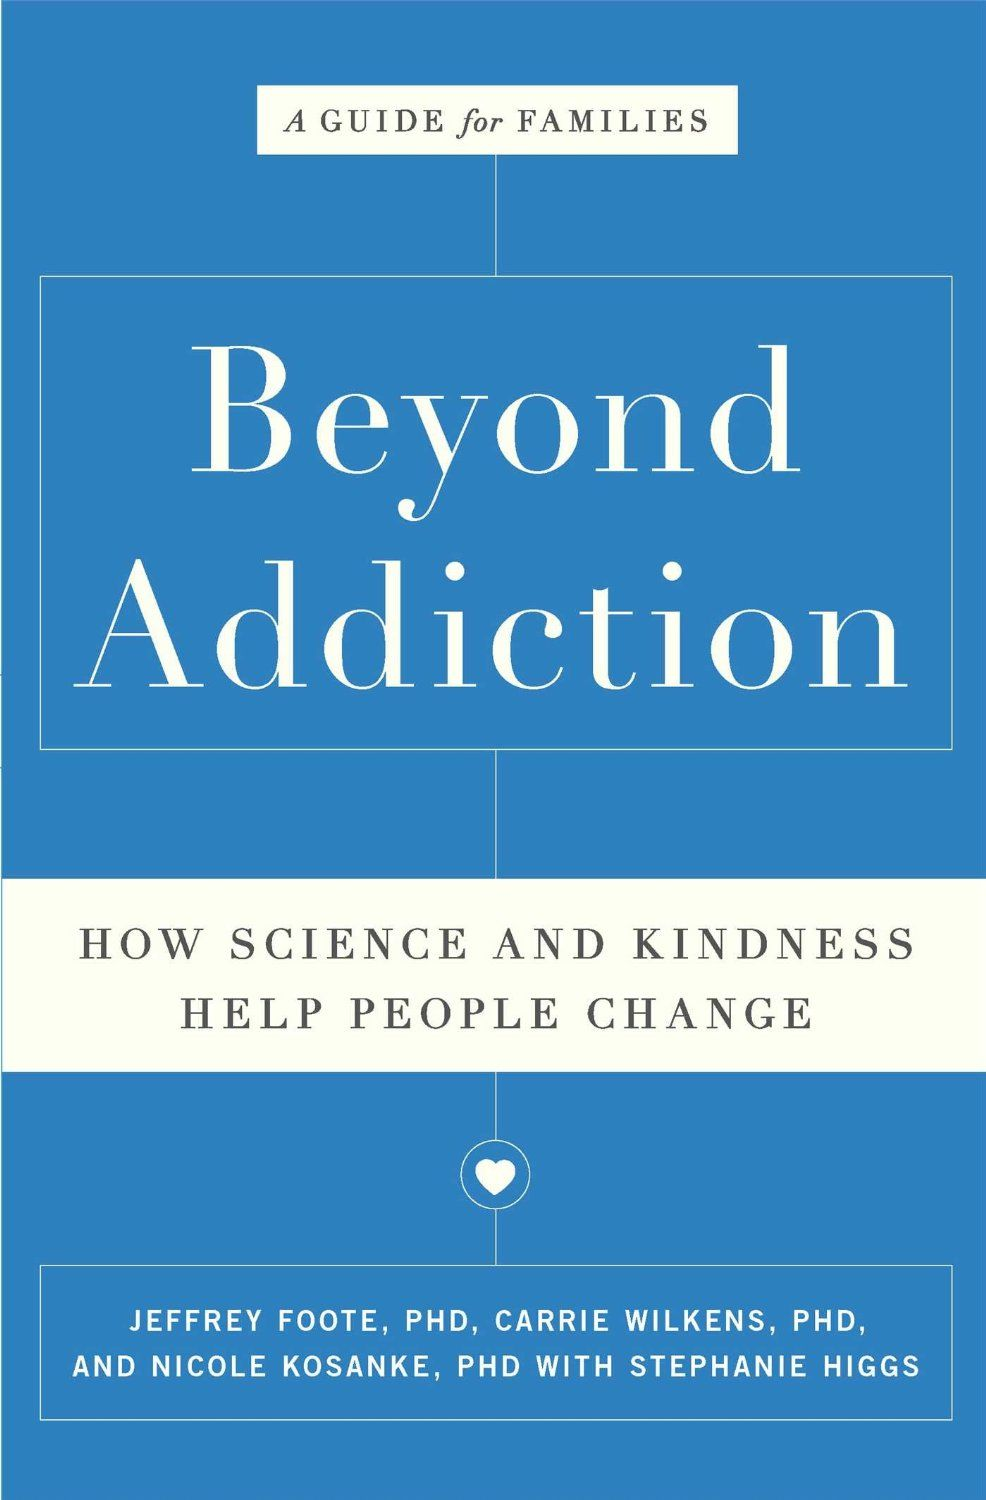 a guide for families beyond addiction: how science and kindness